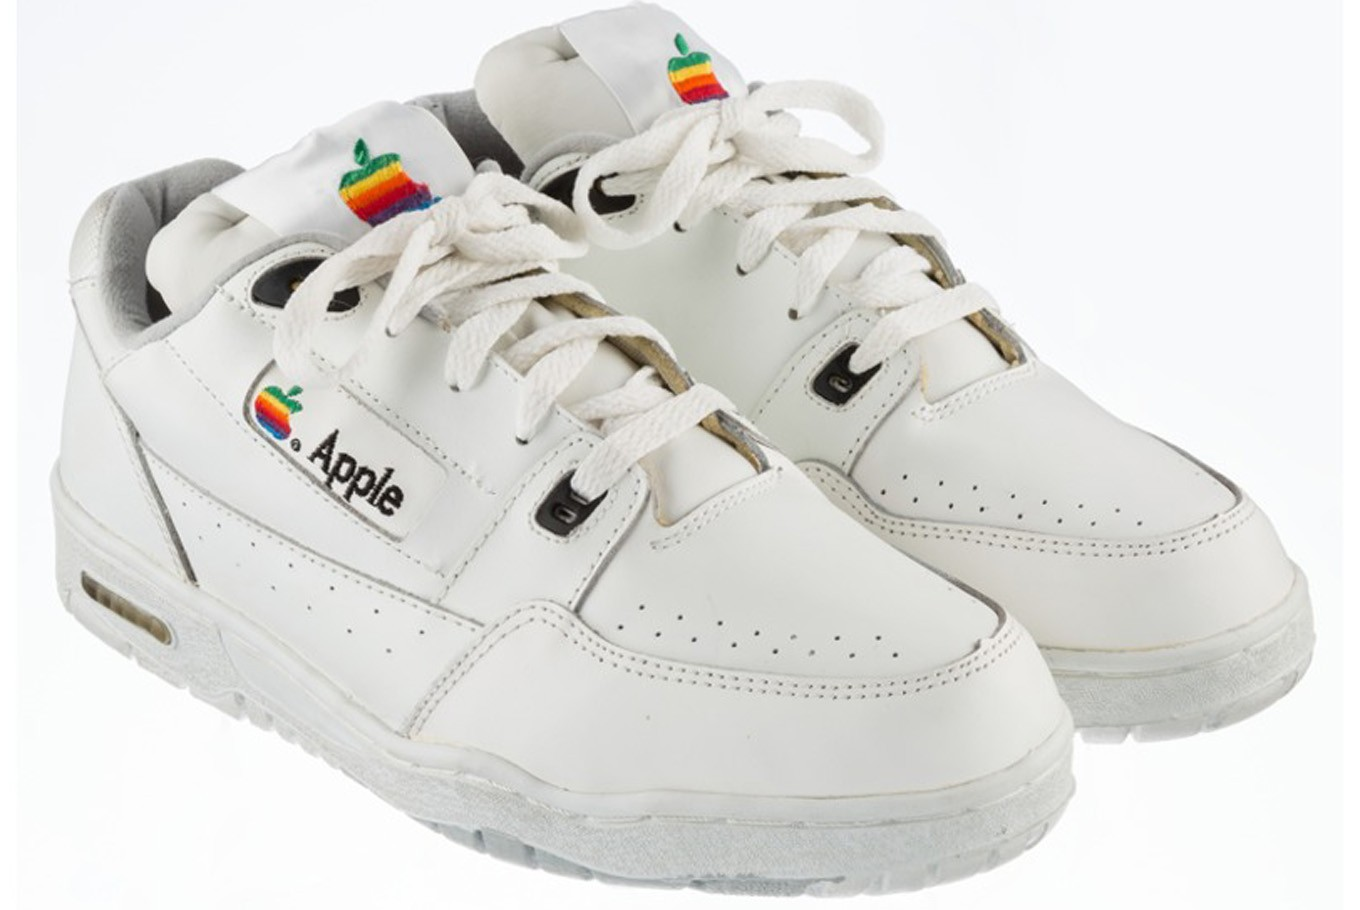 Auction Apple Sell Us Lifestyle Vintage Jakarta The To Post Sneakers O7vwxg